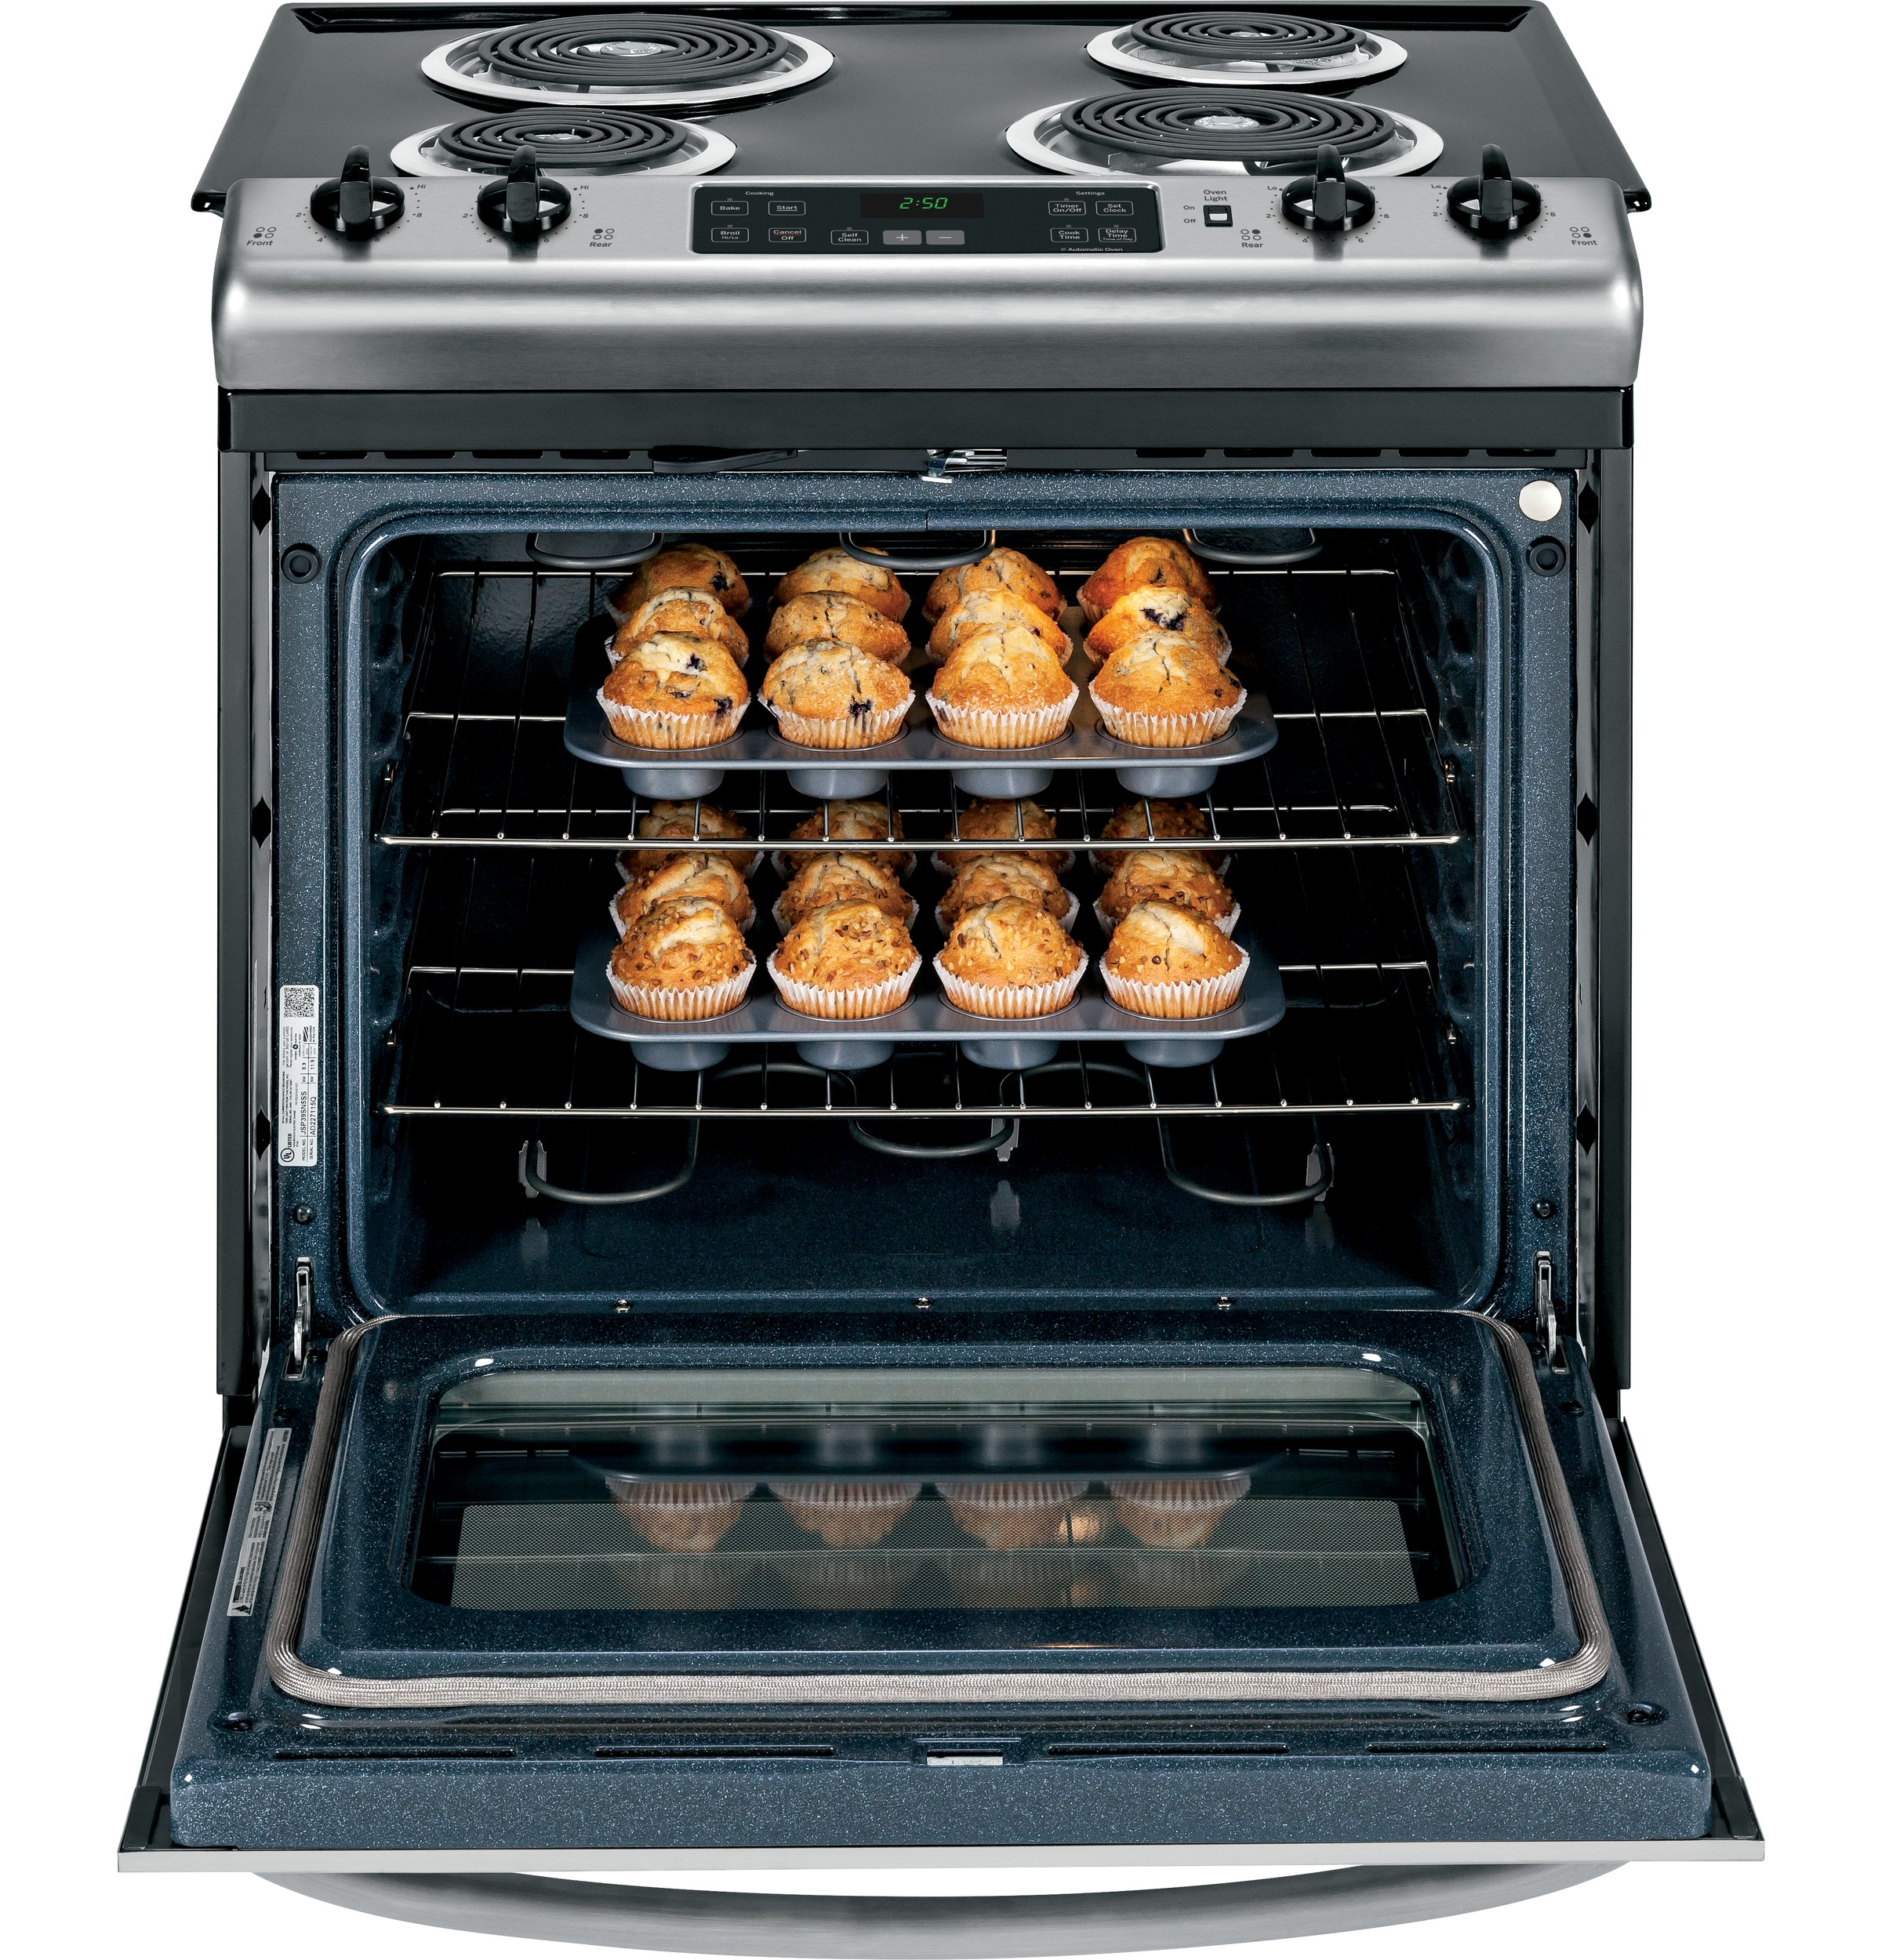 "GE Appliances 30"" Slide-In Electric Range - Stainless Steel"